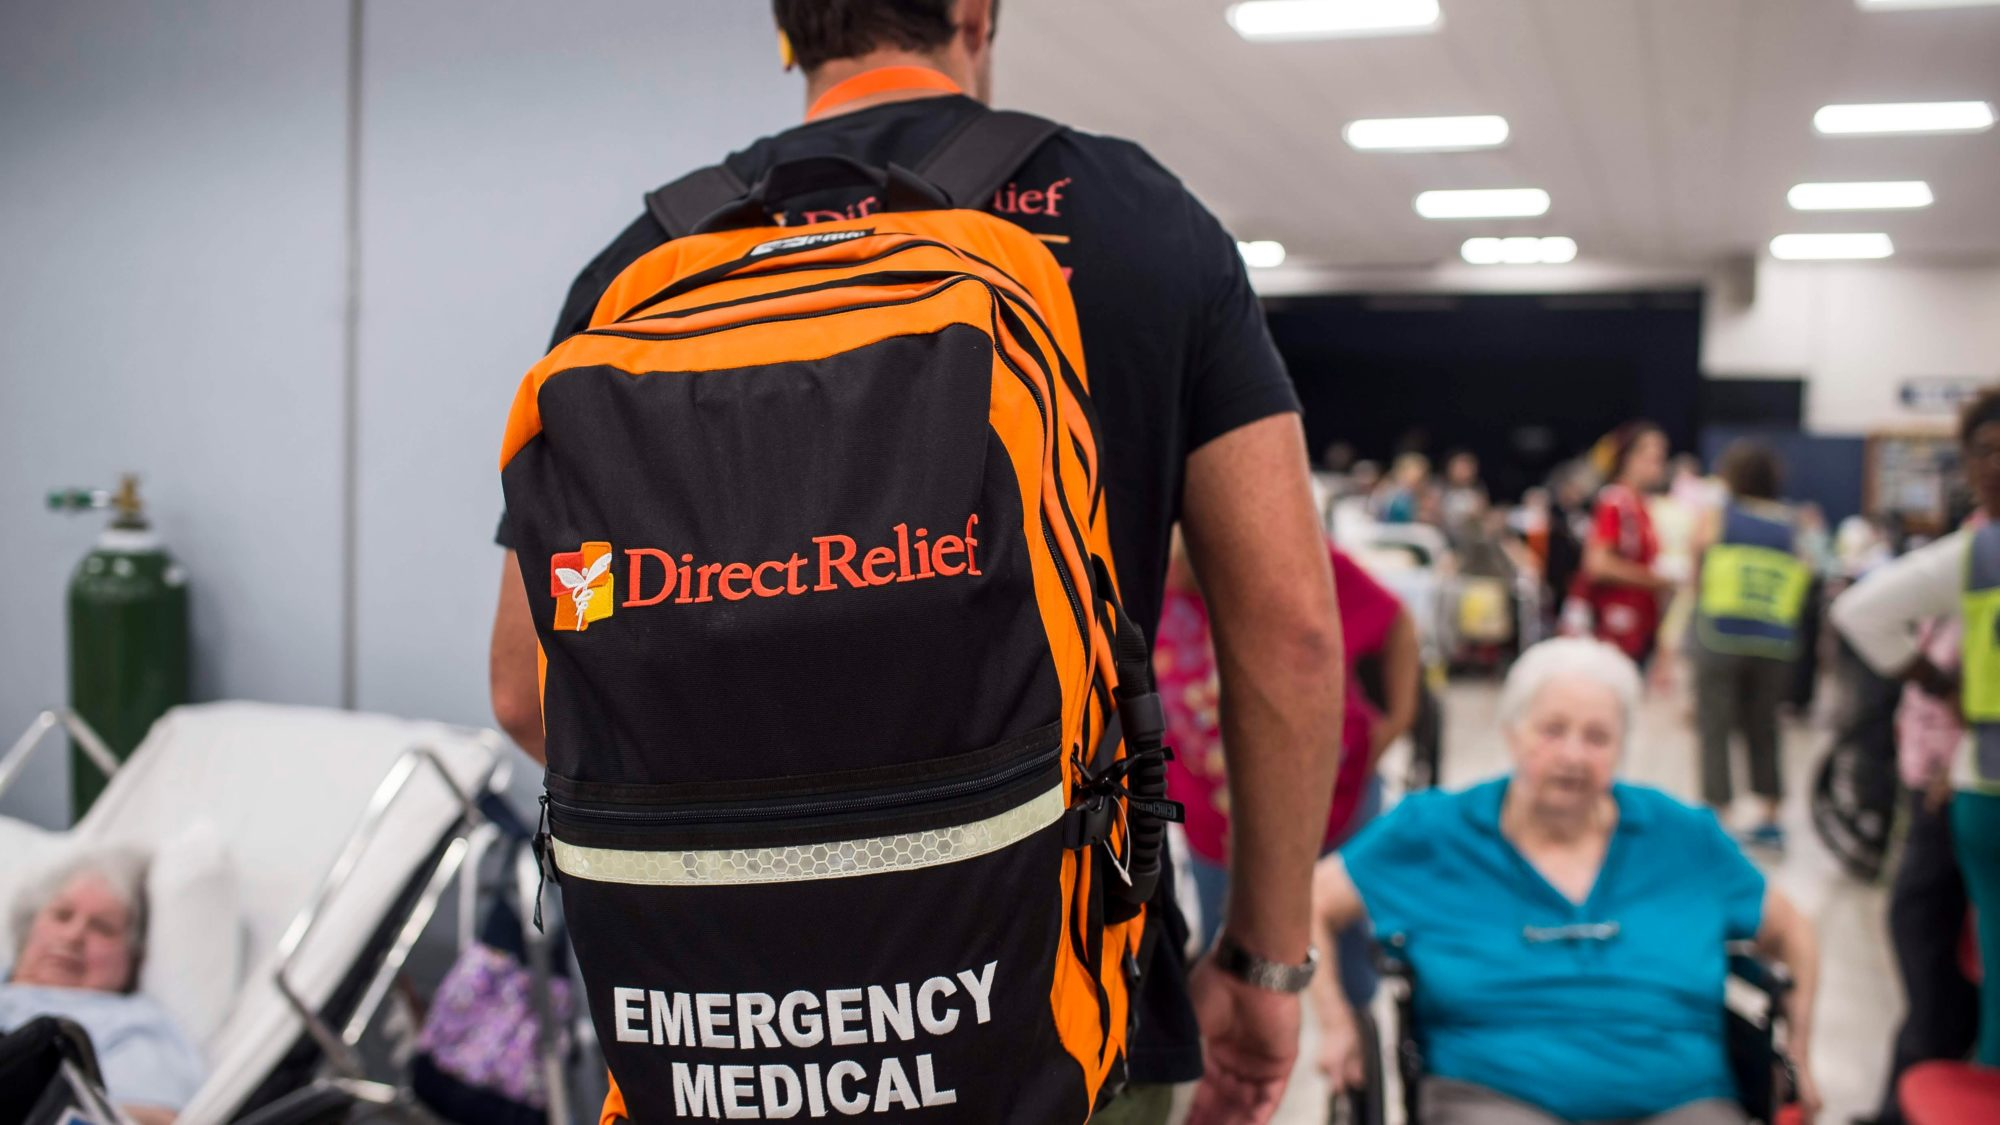 Direct Relief staff deliver medical supplies to a hurricane shelter in Panama City in the aftermath of Hurricane Michael in October 2018. (Photos: Zack Wittman/Direct Relief)